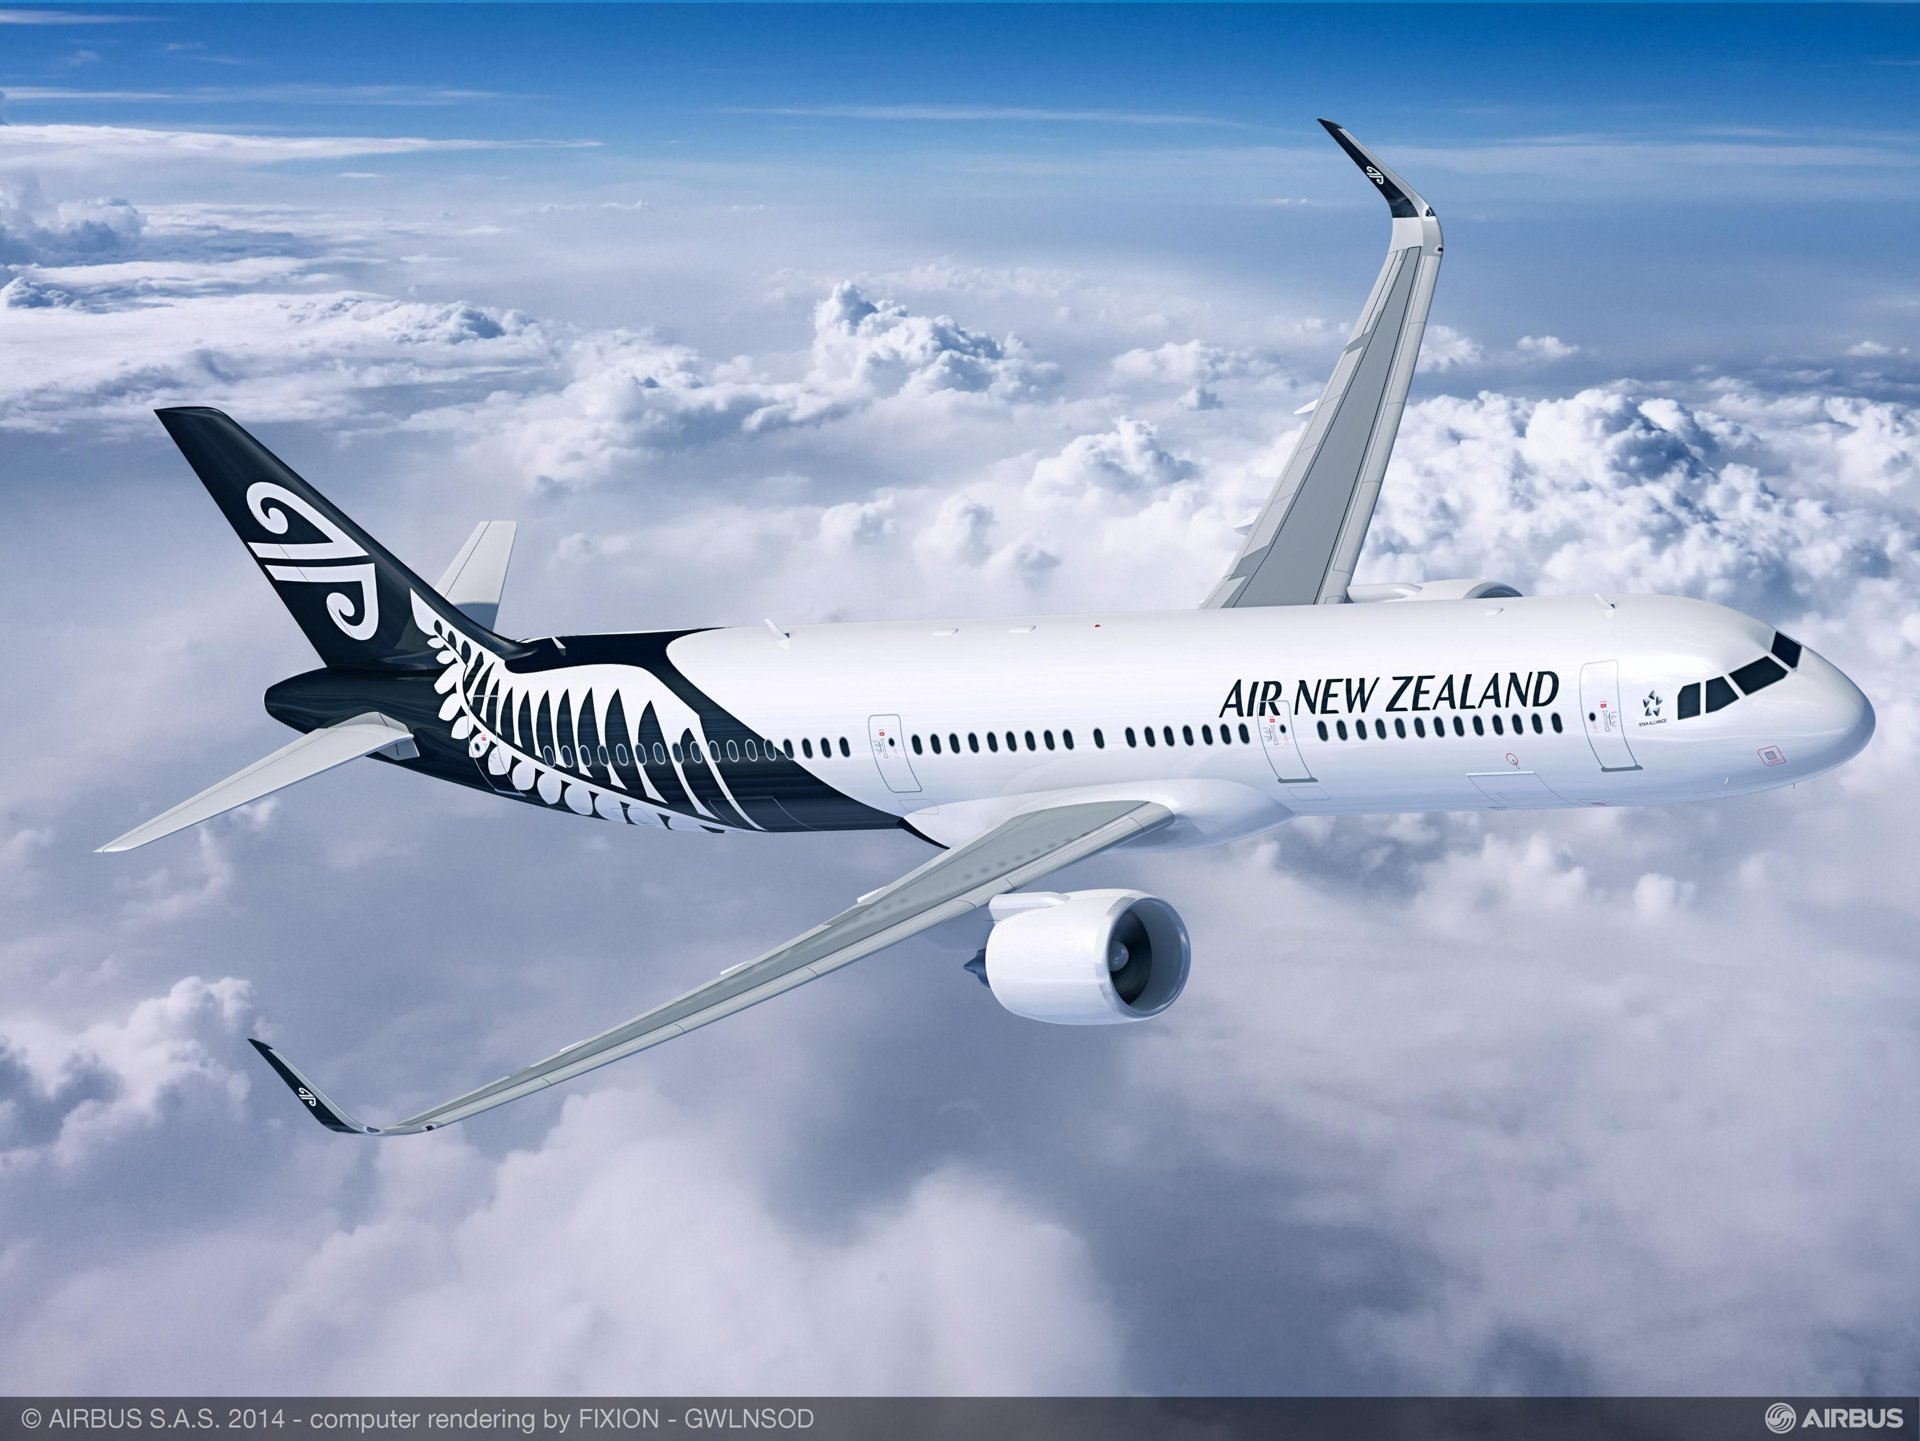 Air New Zealand's agreement with Airbus for 14 A320 Family jetliners (three A321neo, 10 A320neo and one A320ceo) marks the carrier's first order of an A321, which offers the best seat-mile costs of any single-aisle aircraft